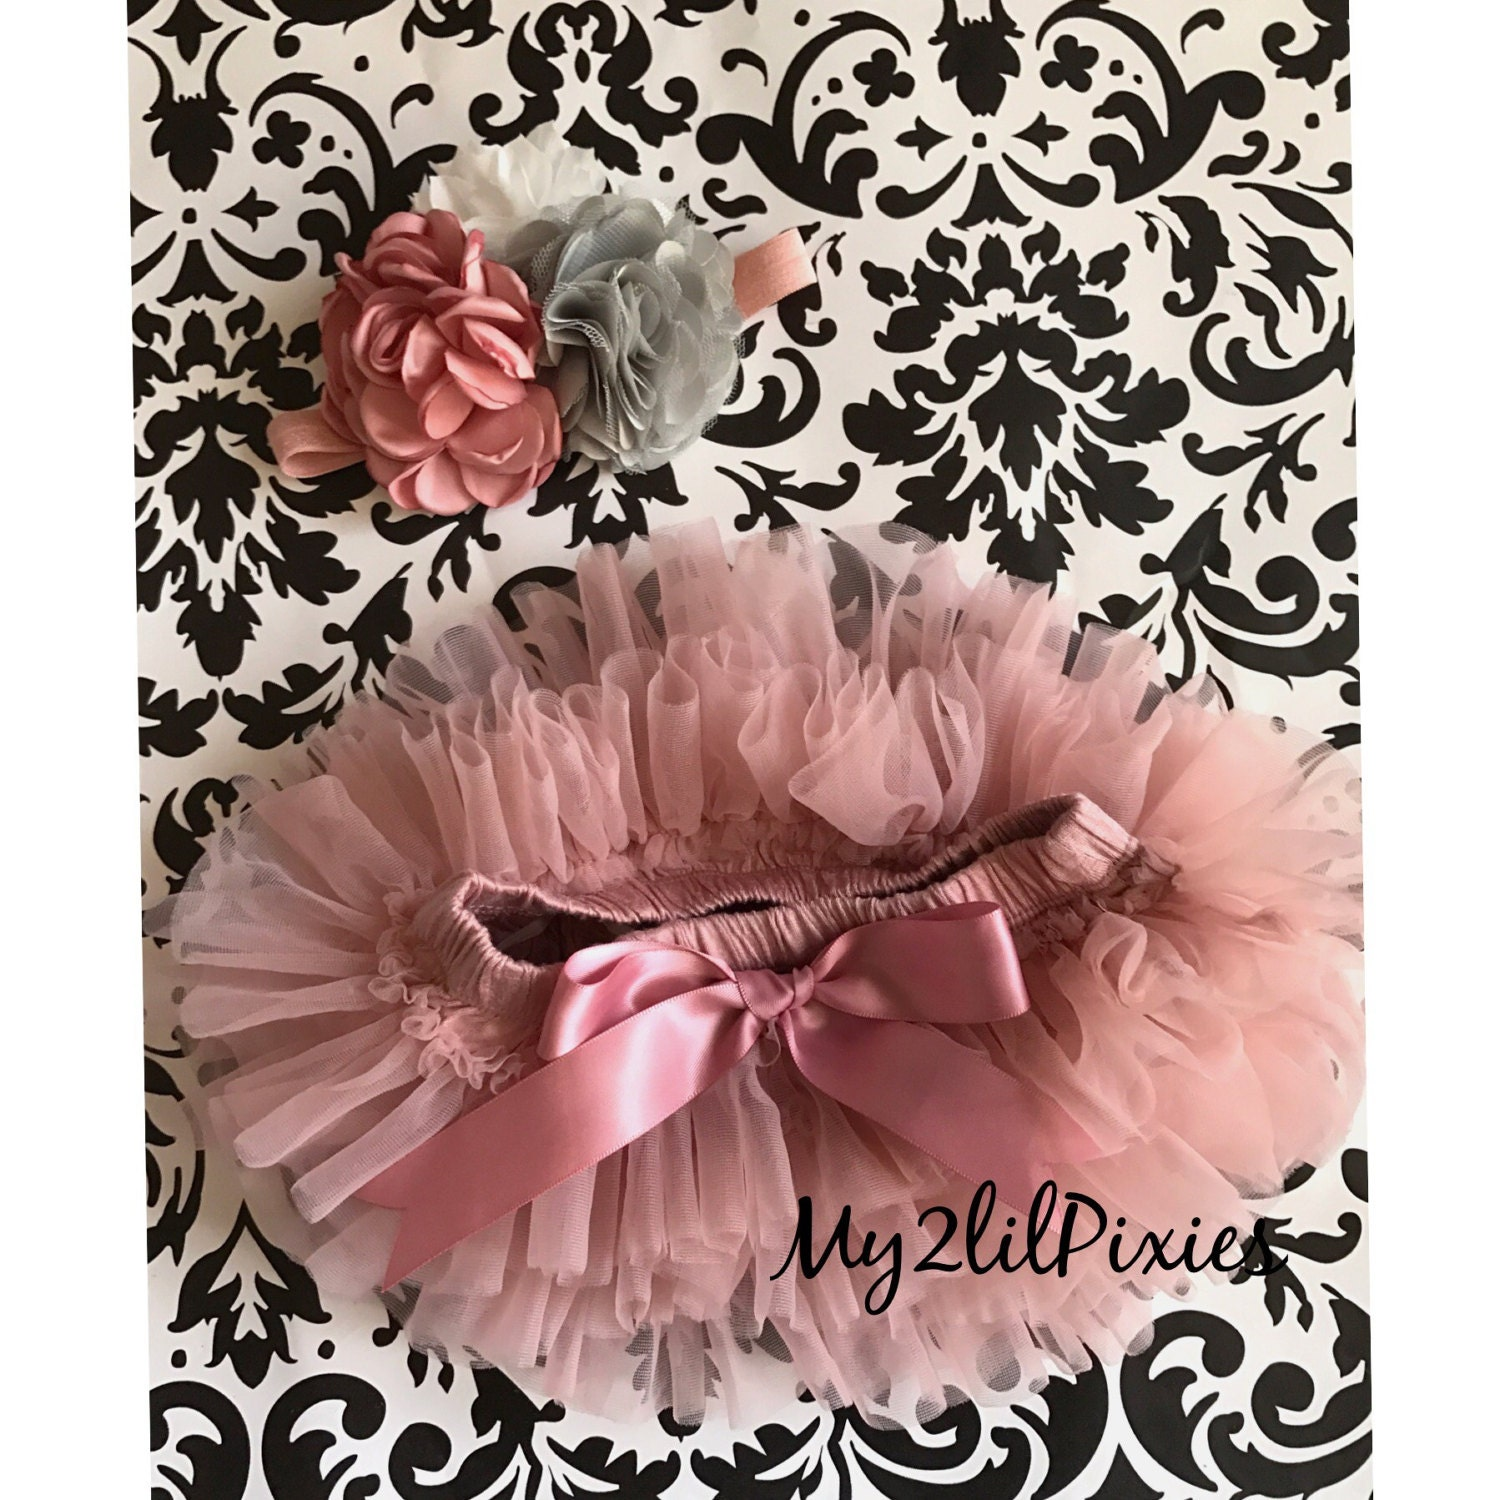 Baby Headband And Tutu Bloomers Vintage Pink Girl Etsy Dress Flower 0 2th Newborn Tutubaby Bloomer Diaper Cover Gift